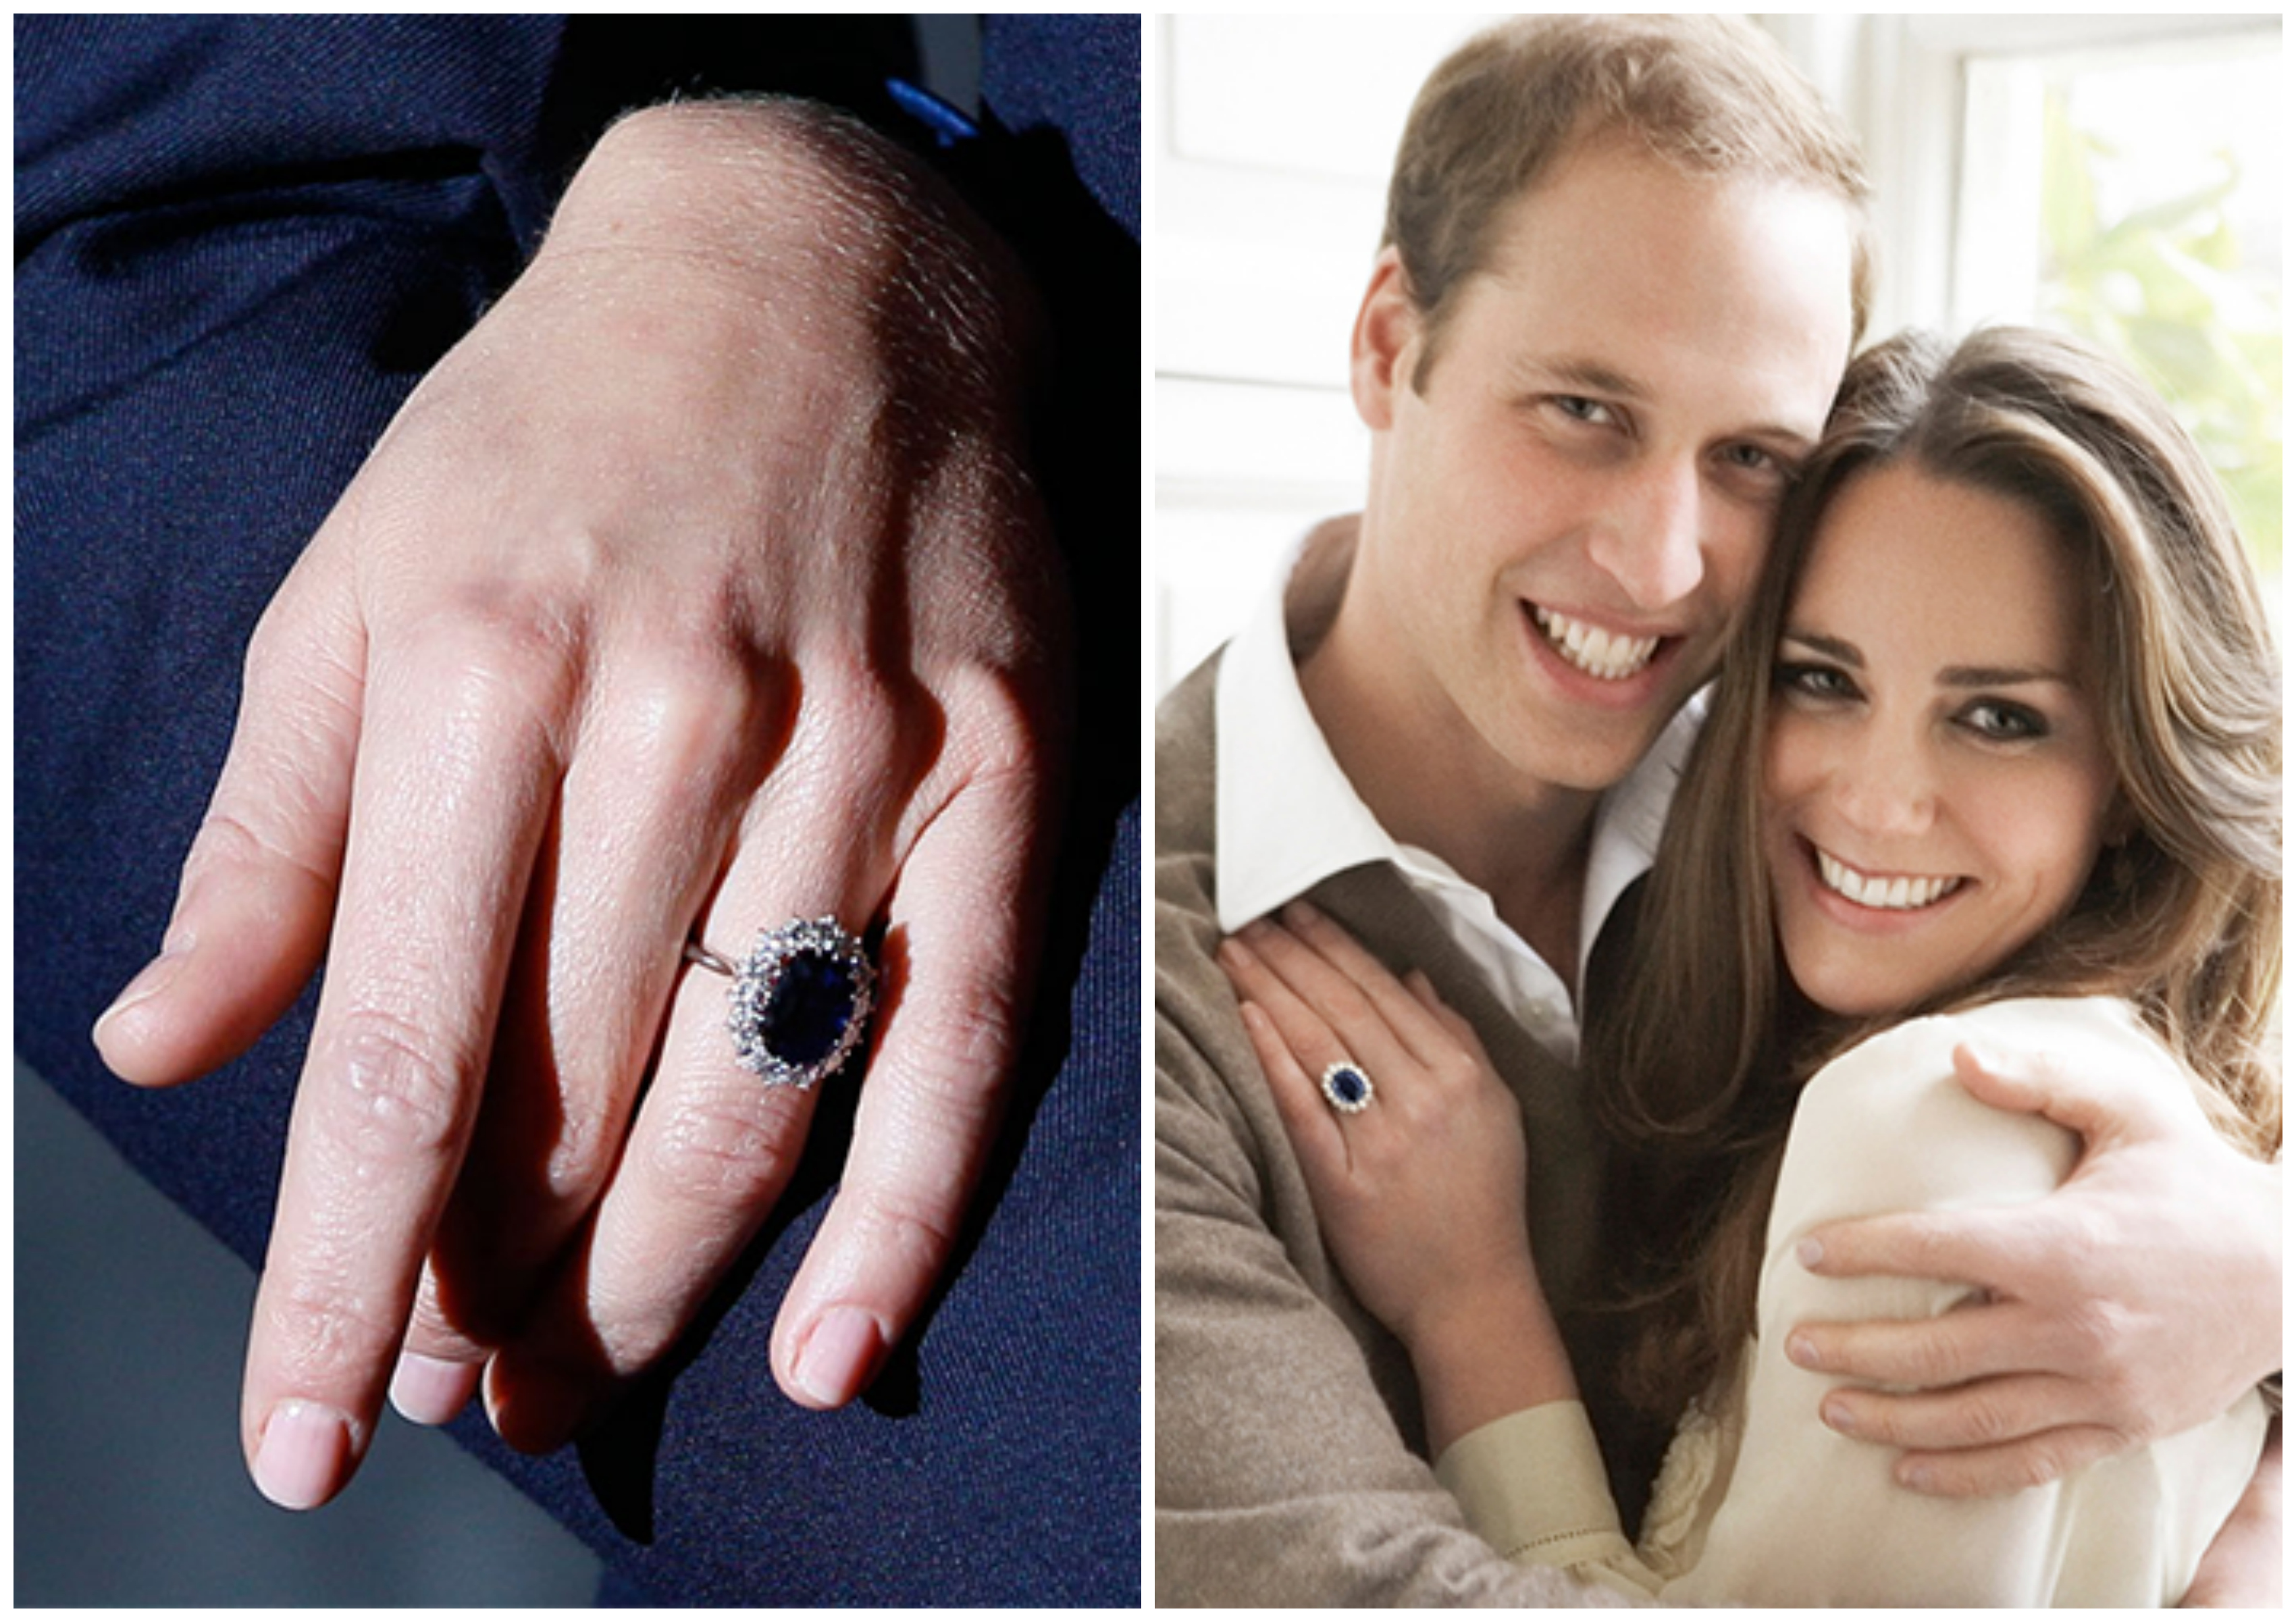 middleton couponinsanity rings most celebrity kate outrageous engagement lifestyle celeberity